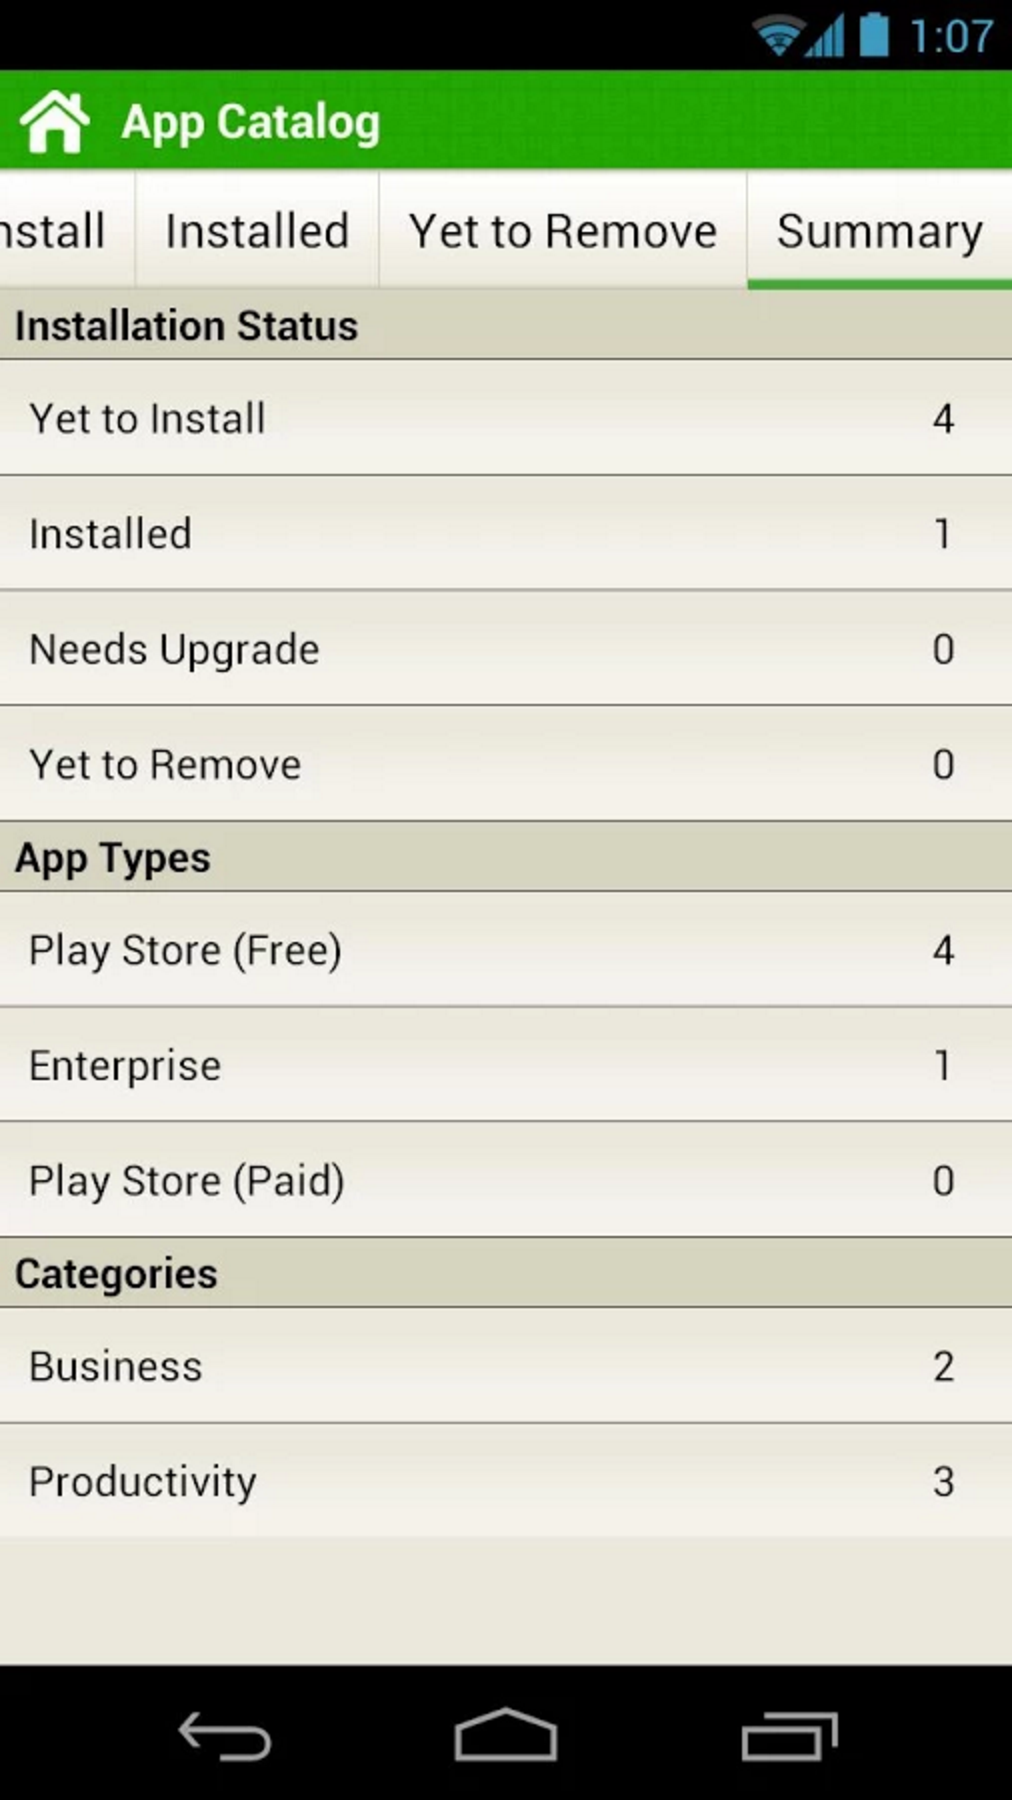 Summary of the App Catalog - the number of apps installed, categories and so on.